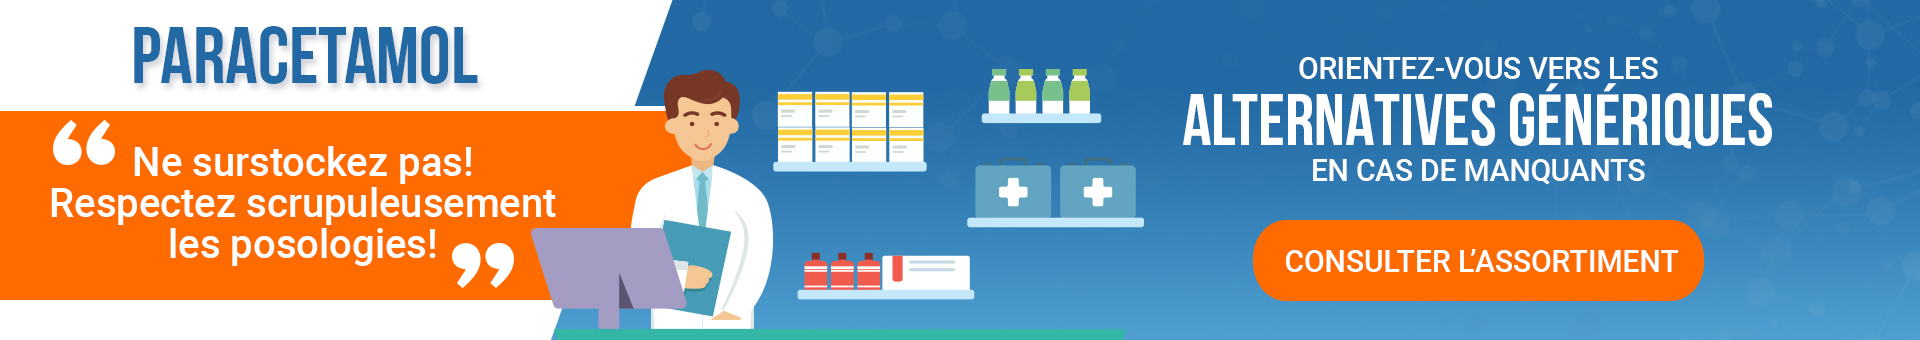 Pharmacy_by_Banner_Paracetamol_FR_385x613.jpg